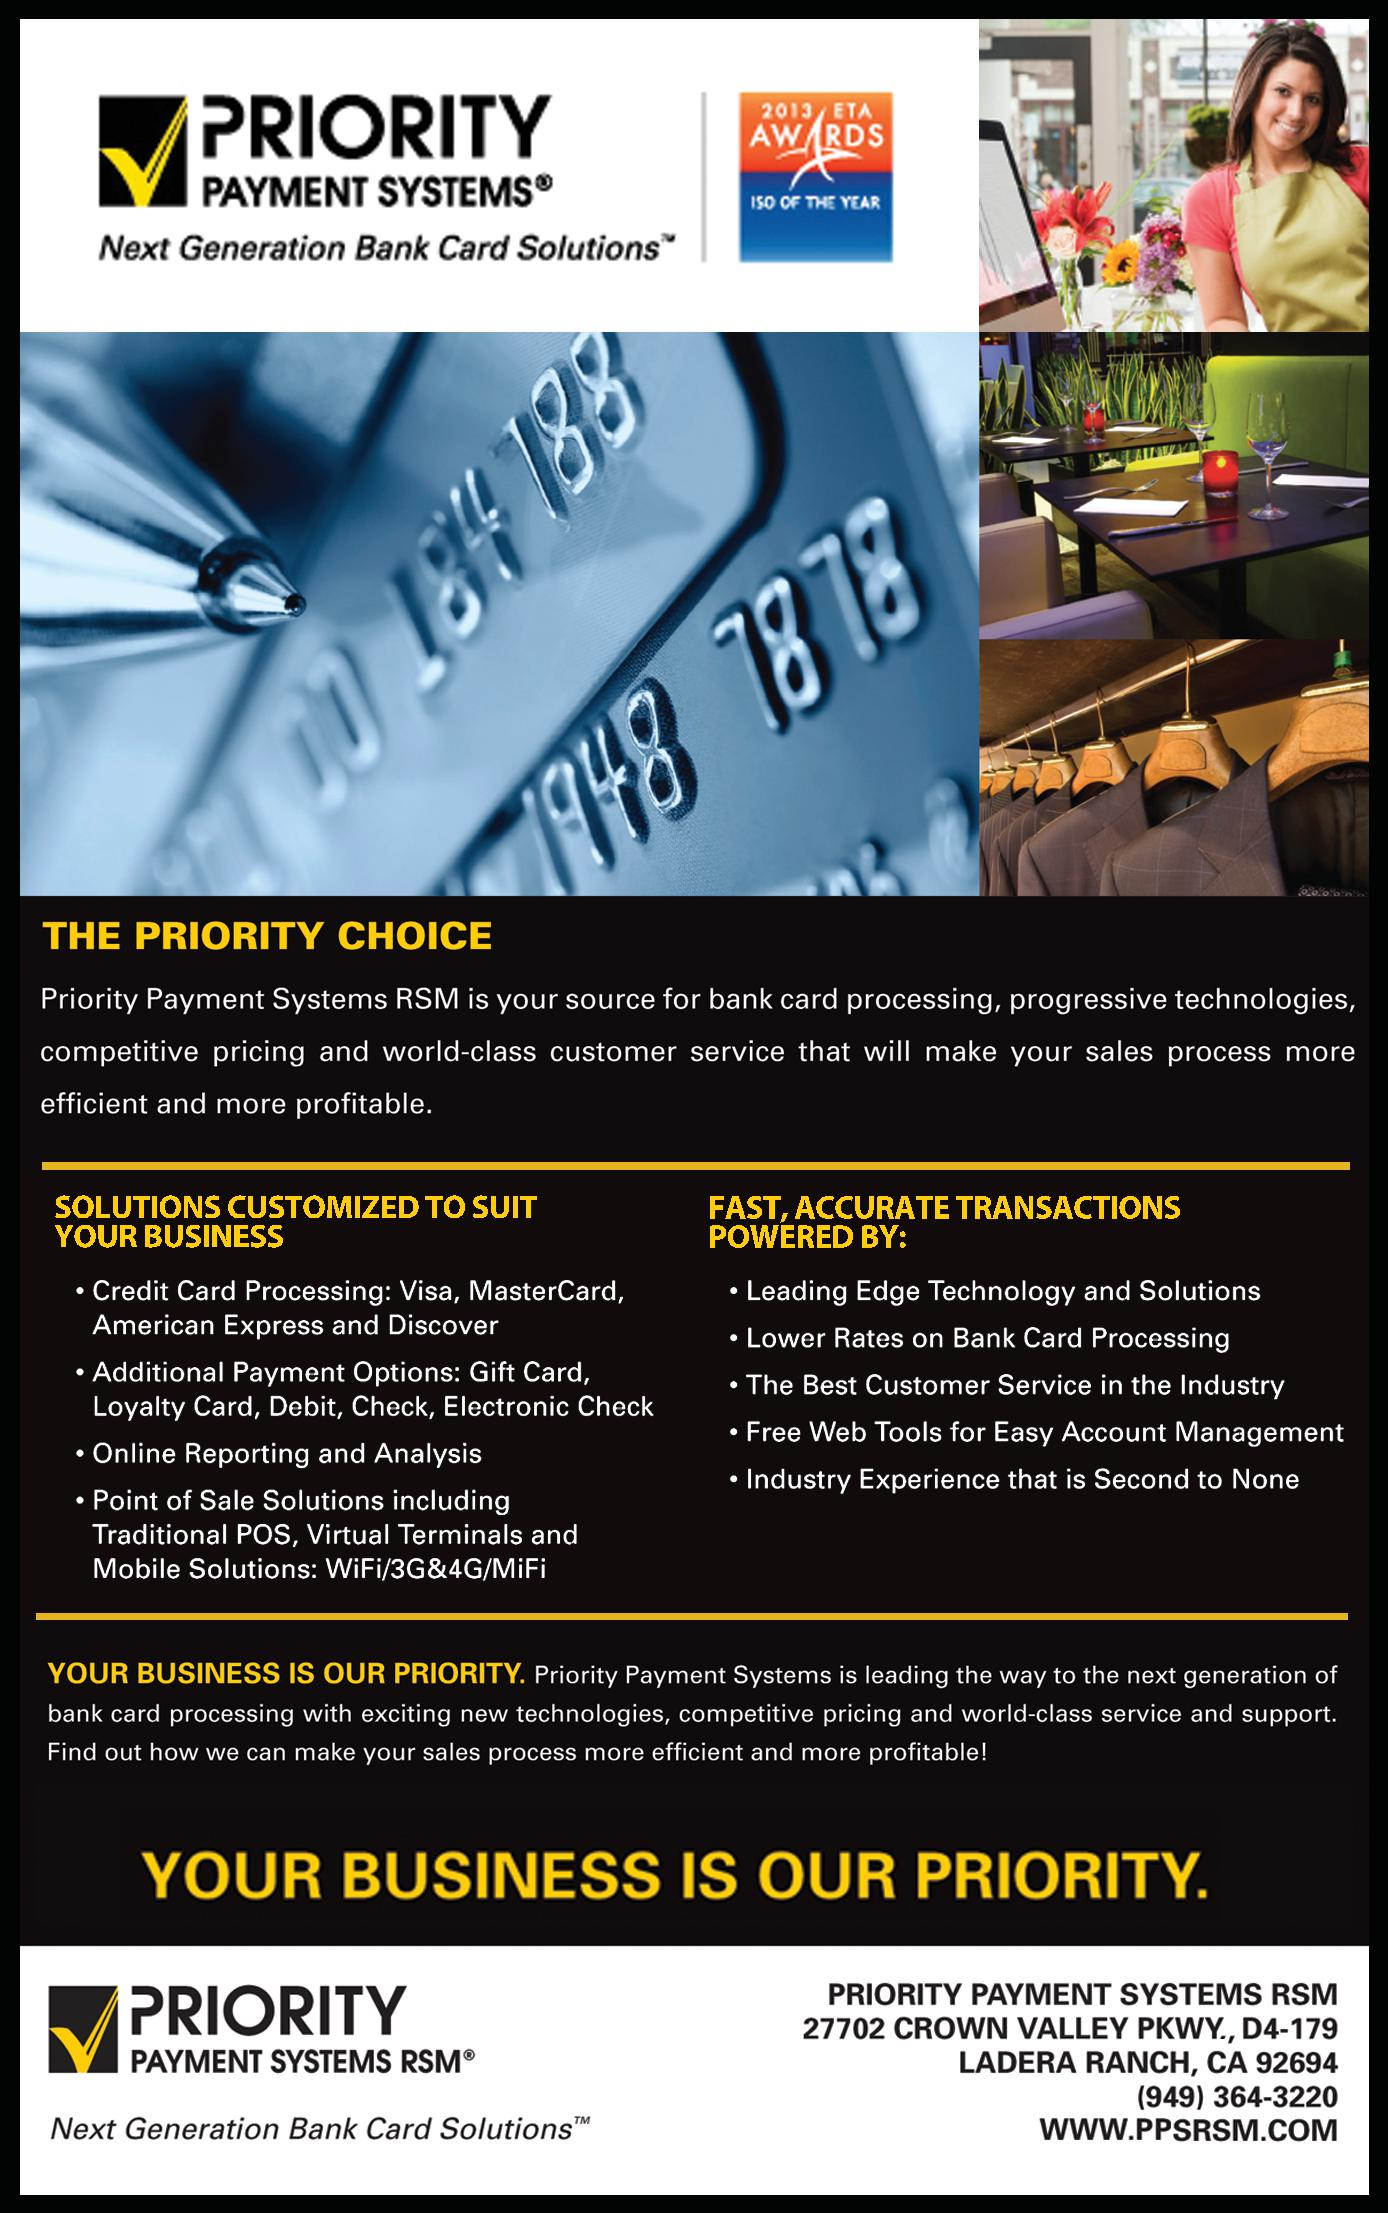 Priority Payment Systems RSM